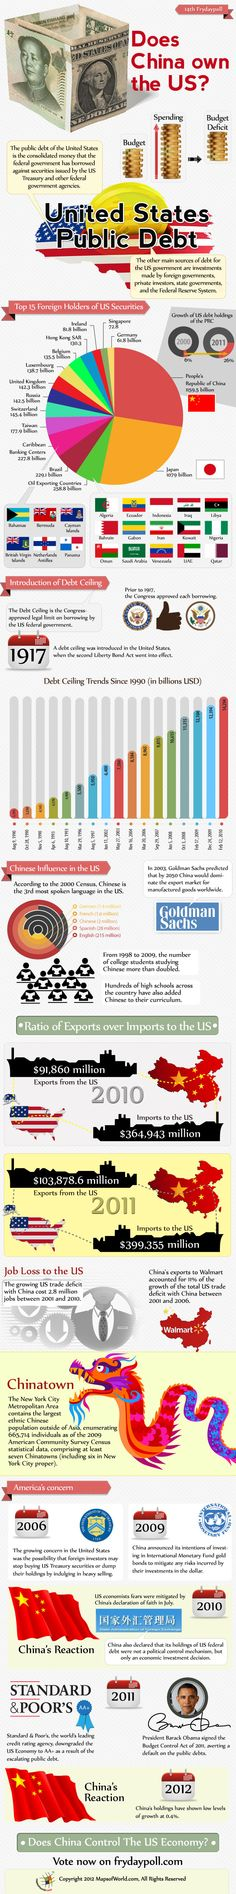 Does #China Own The #US? Does China Control The US #Economy? Is China's Dominance A Threat To The US Economy? Find in-depth review with supportive infographic, video and discussion - Let us know what you think - Vote & Comment